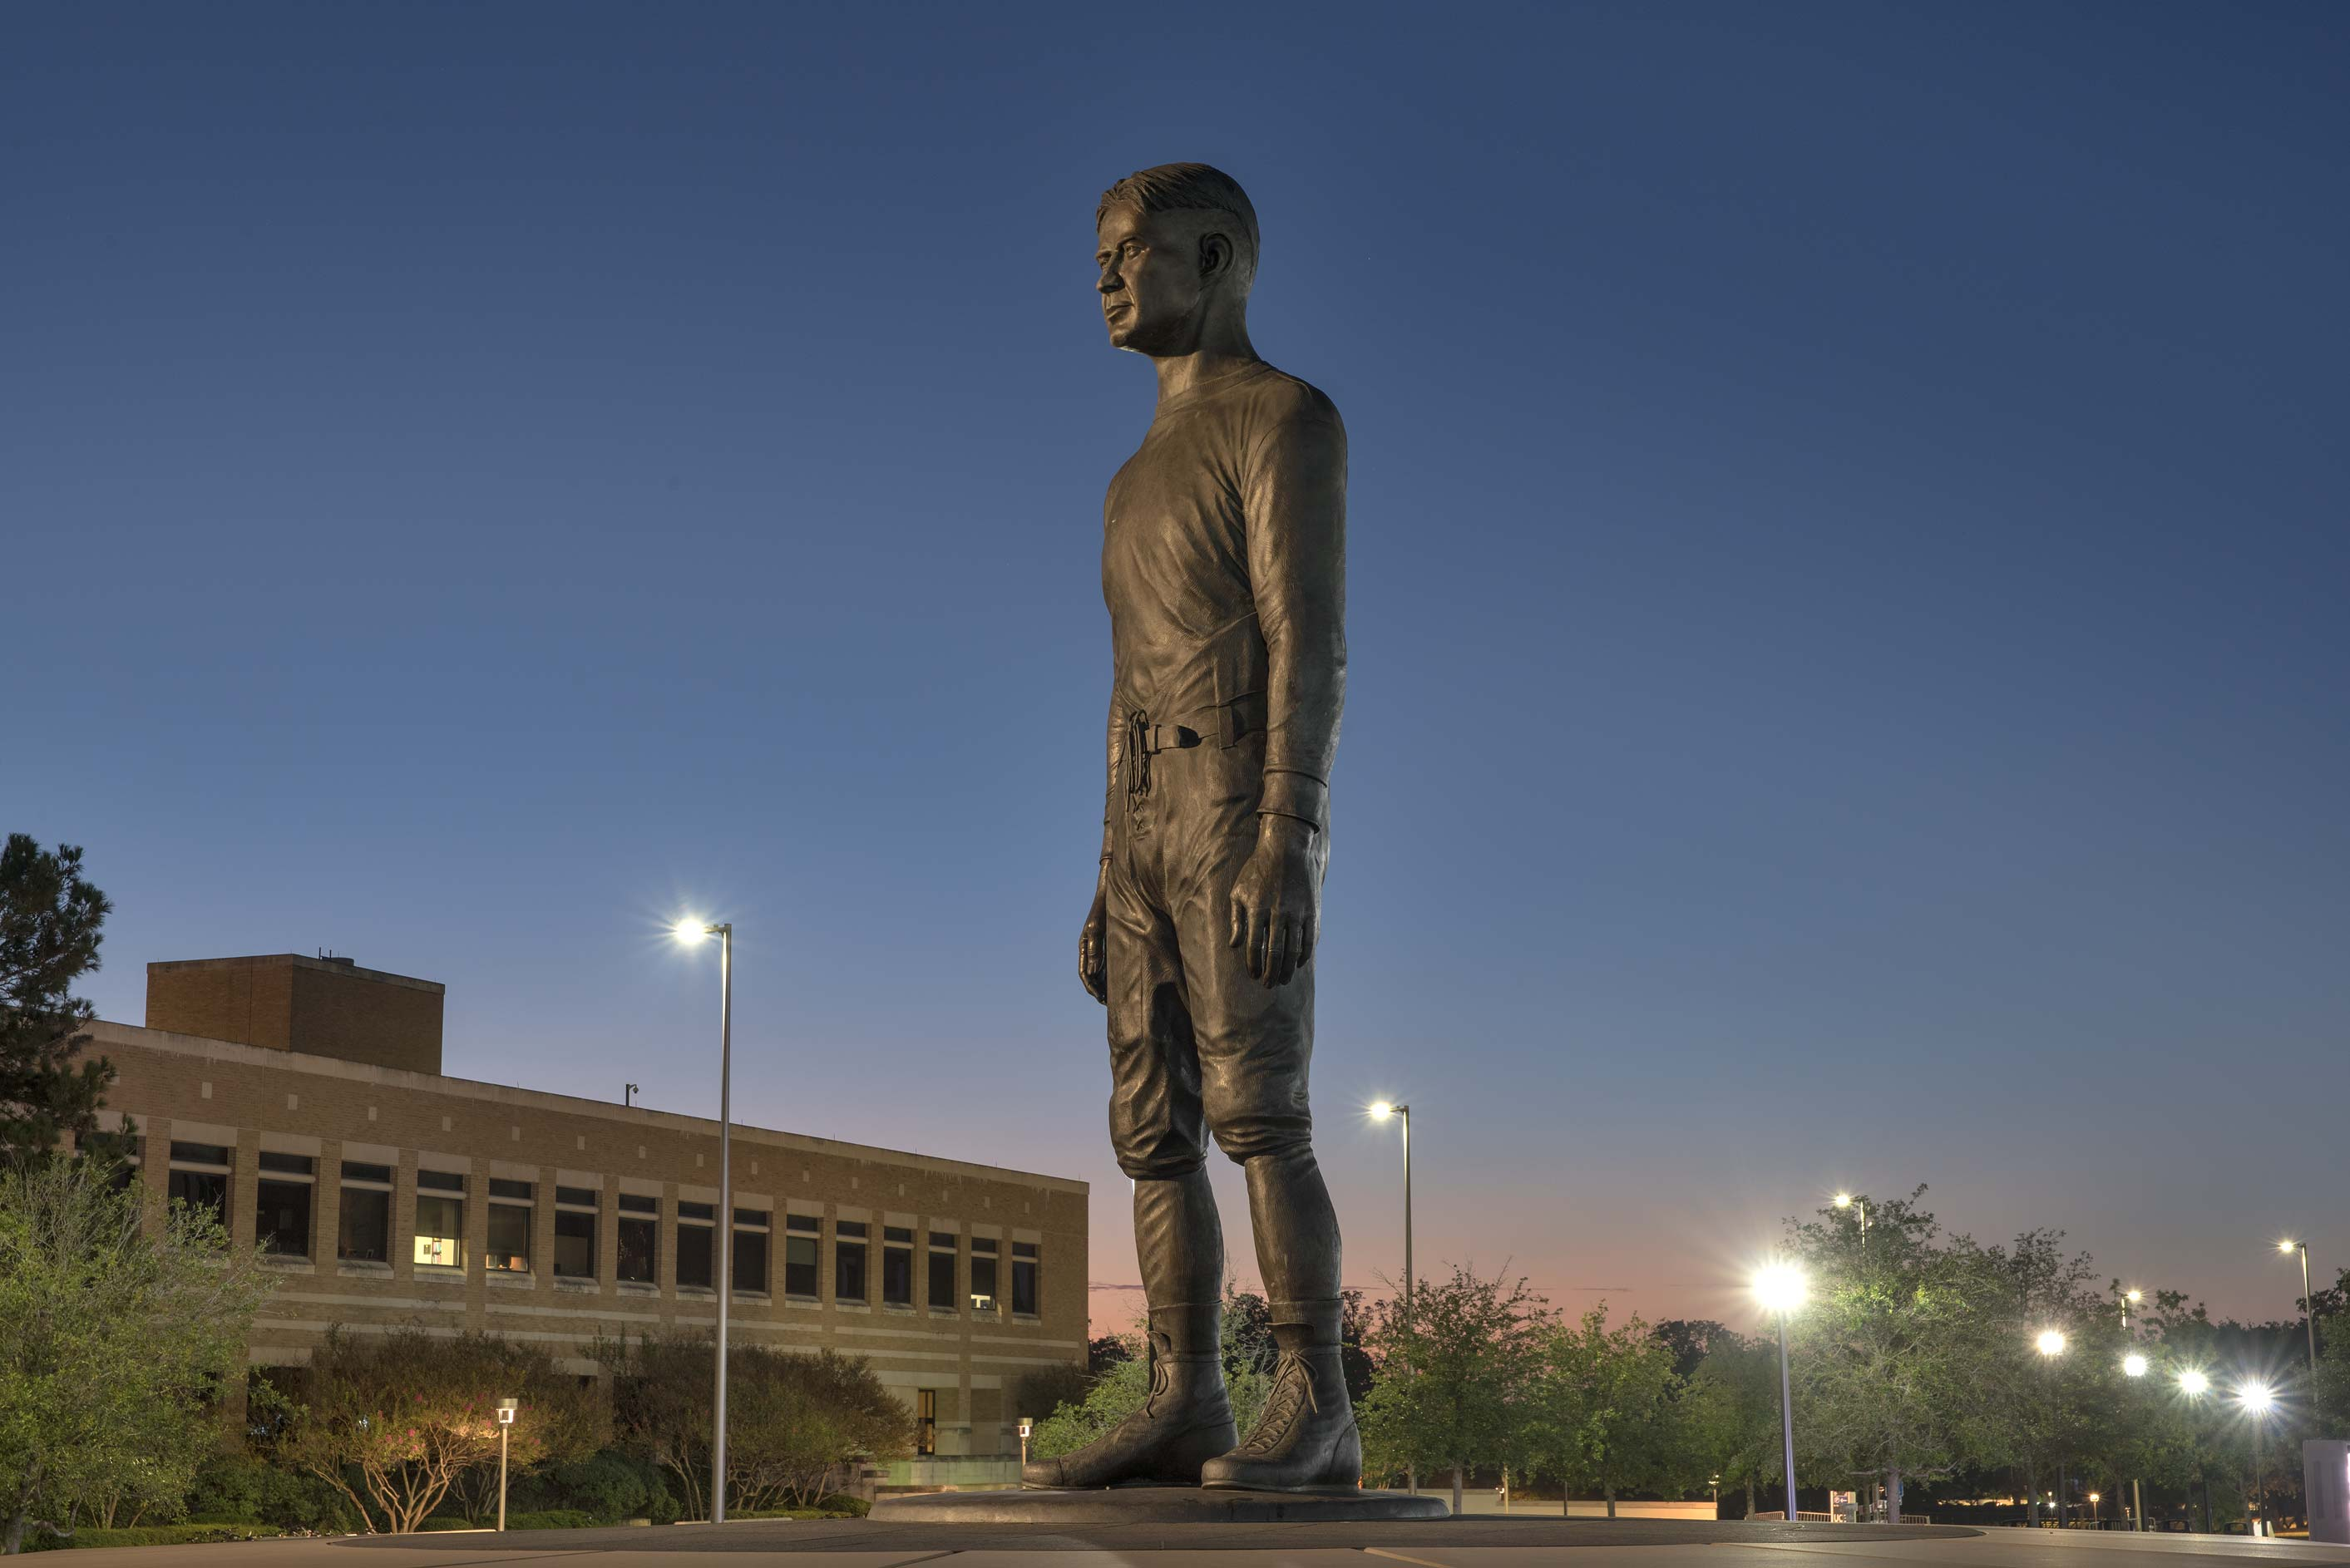 Yell Leader Monument near Kyle Field on campus of...A&M University. College Station, Texas